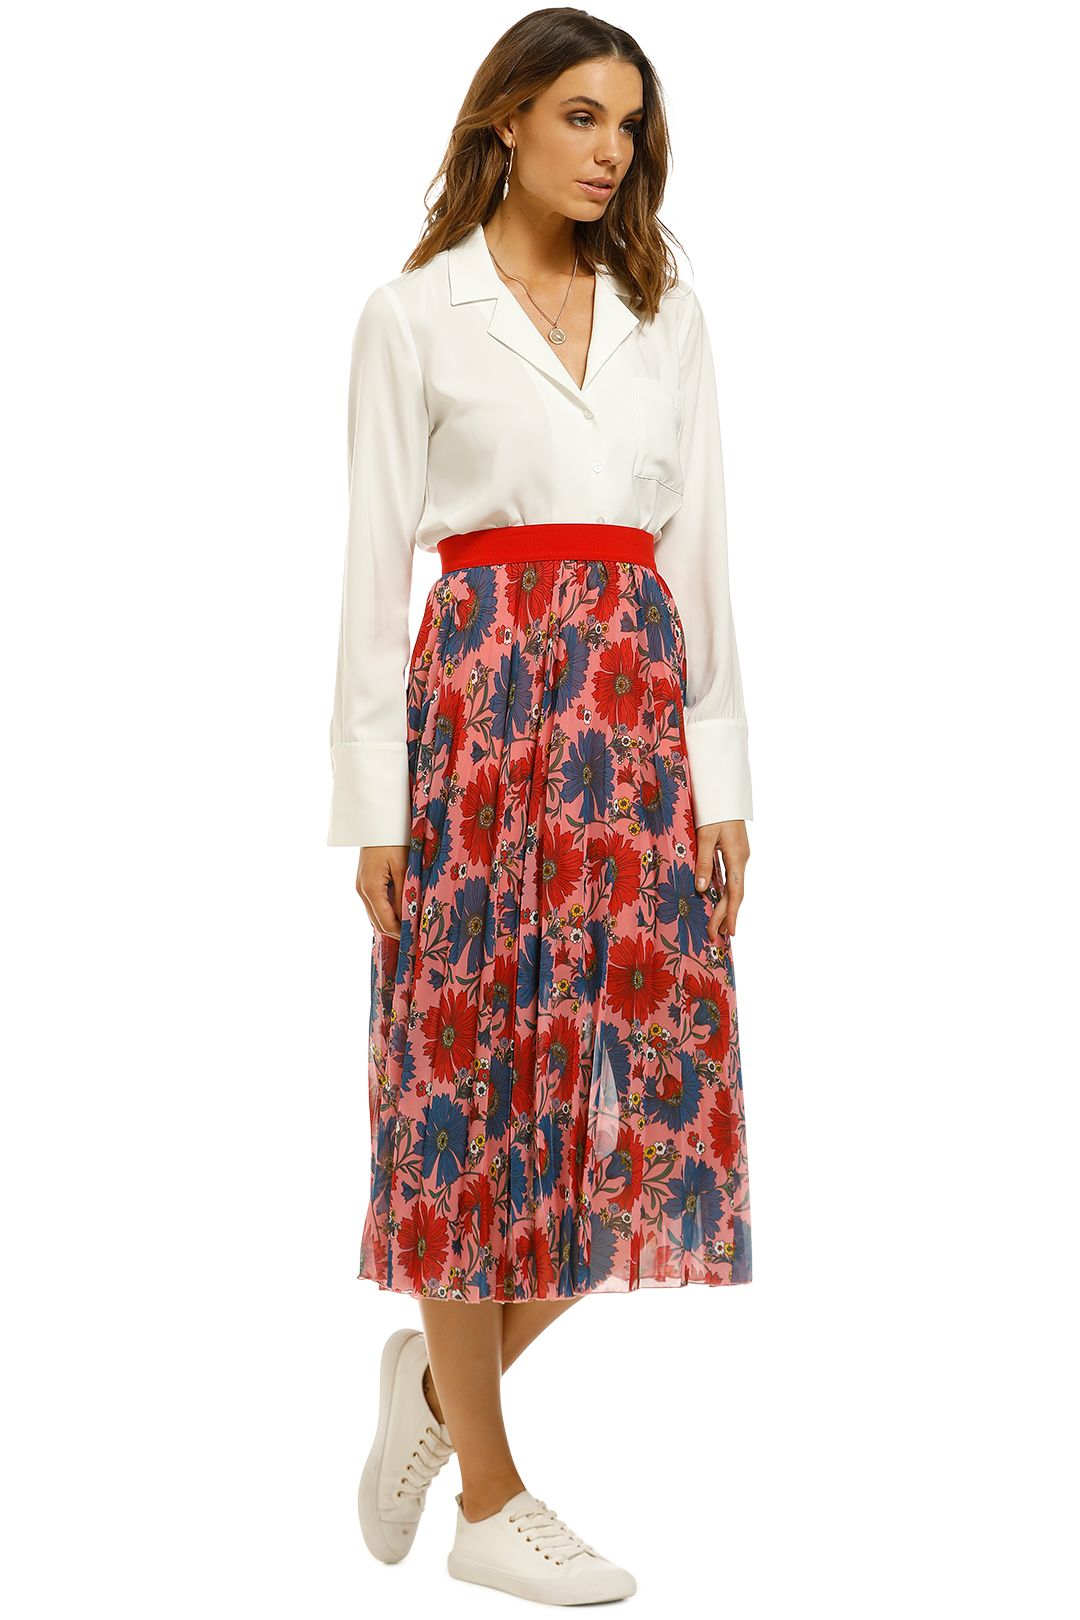 Curate-by-Trelise-Cooper-Side-Pleat-Skirt-Side